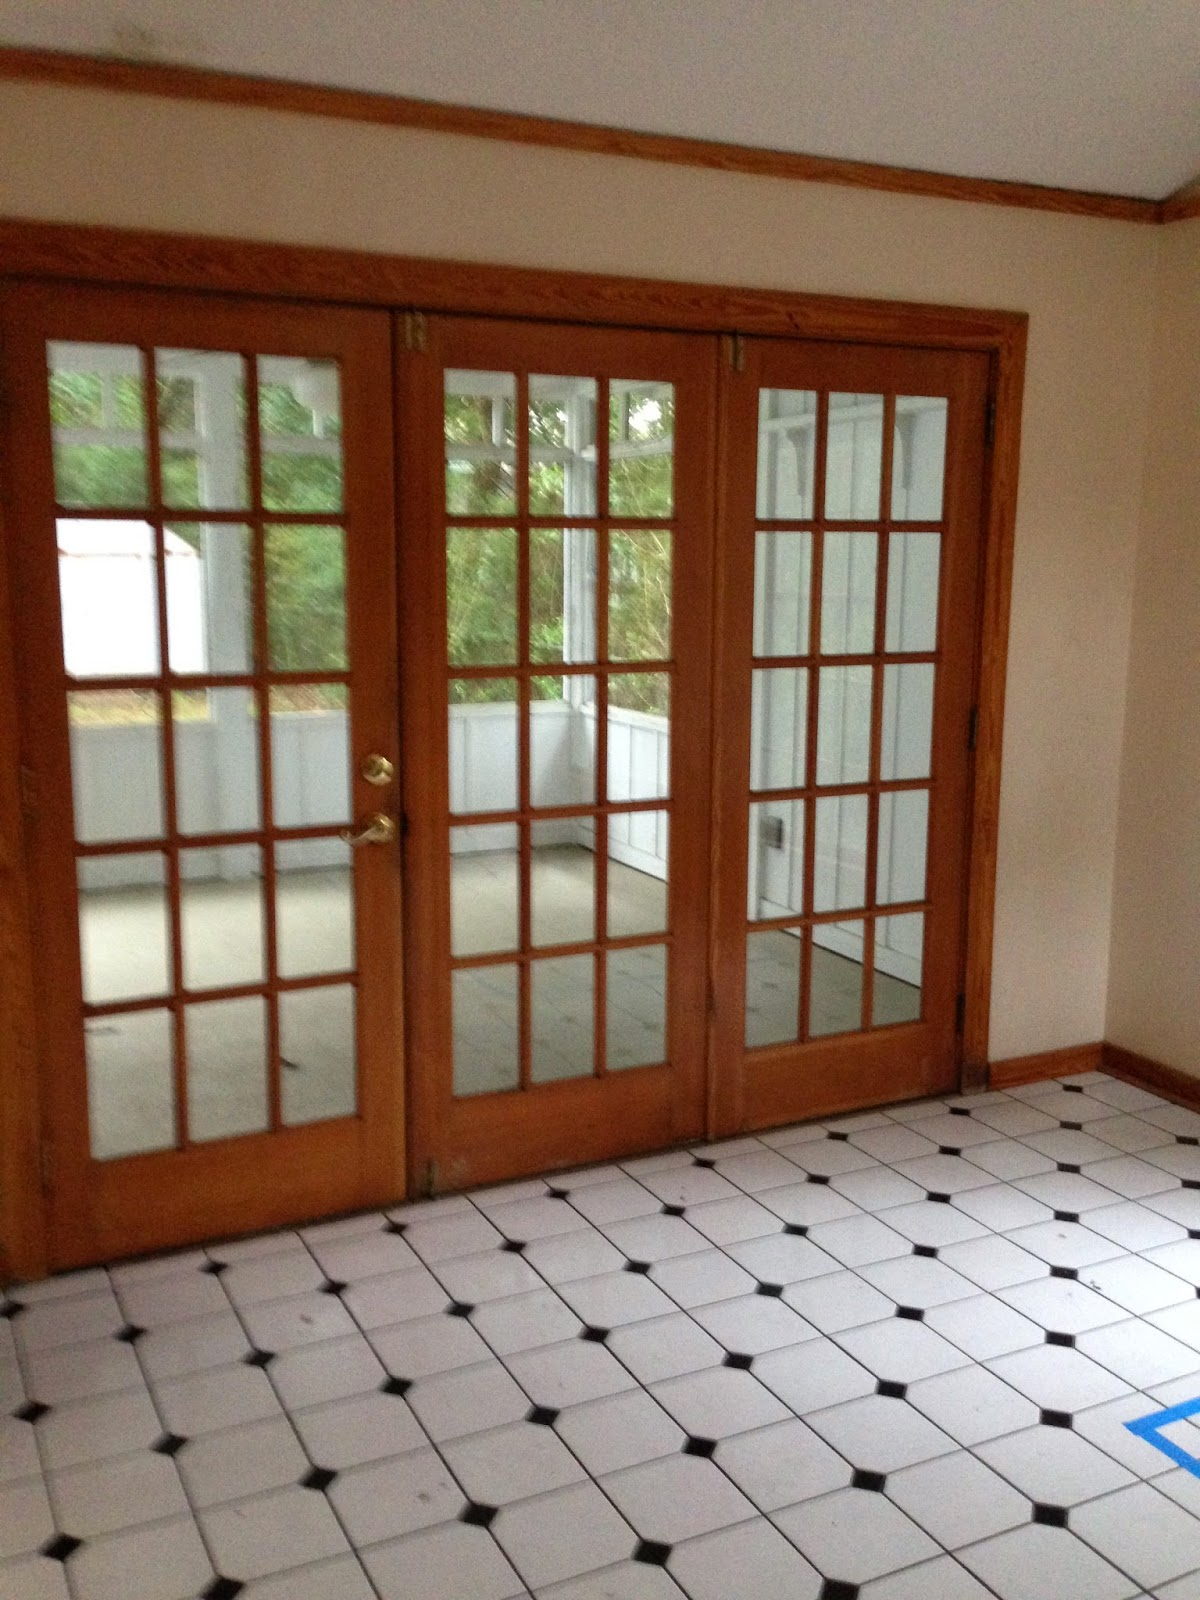 This Black And White Flooring Was The Original Dining Room Floor A Screened Porch Off Later Became My Office